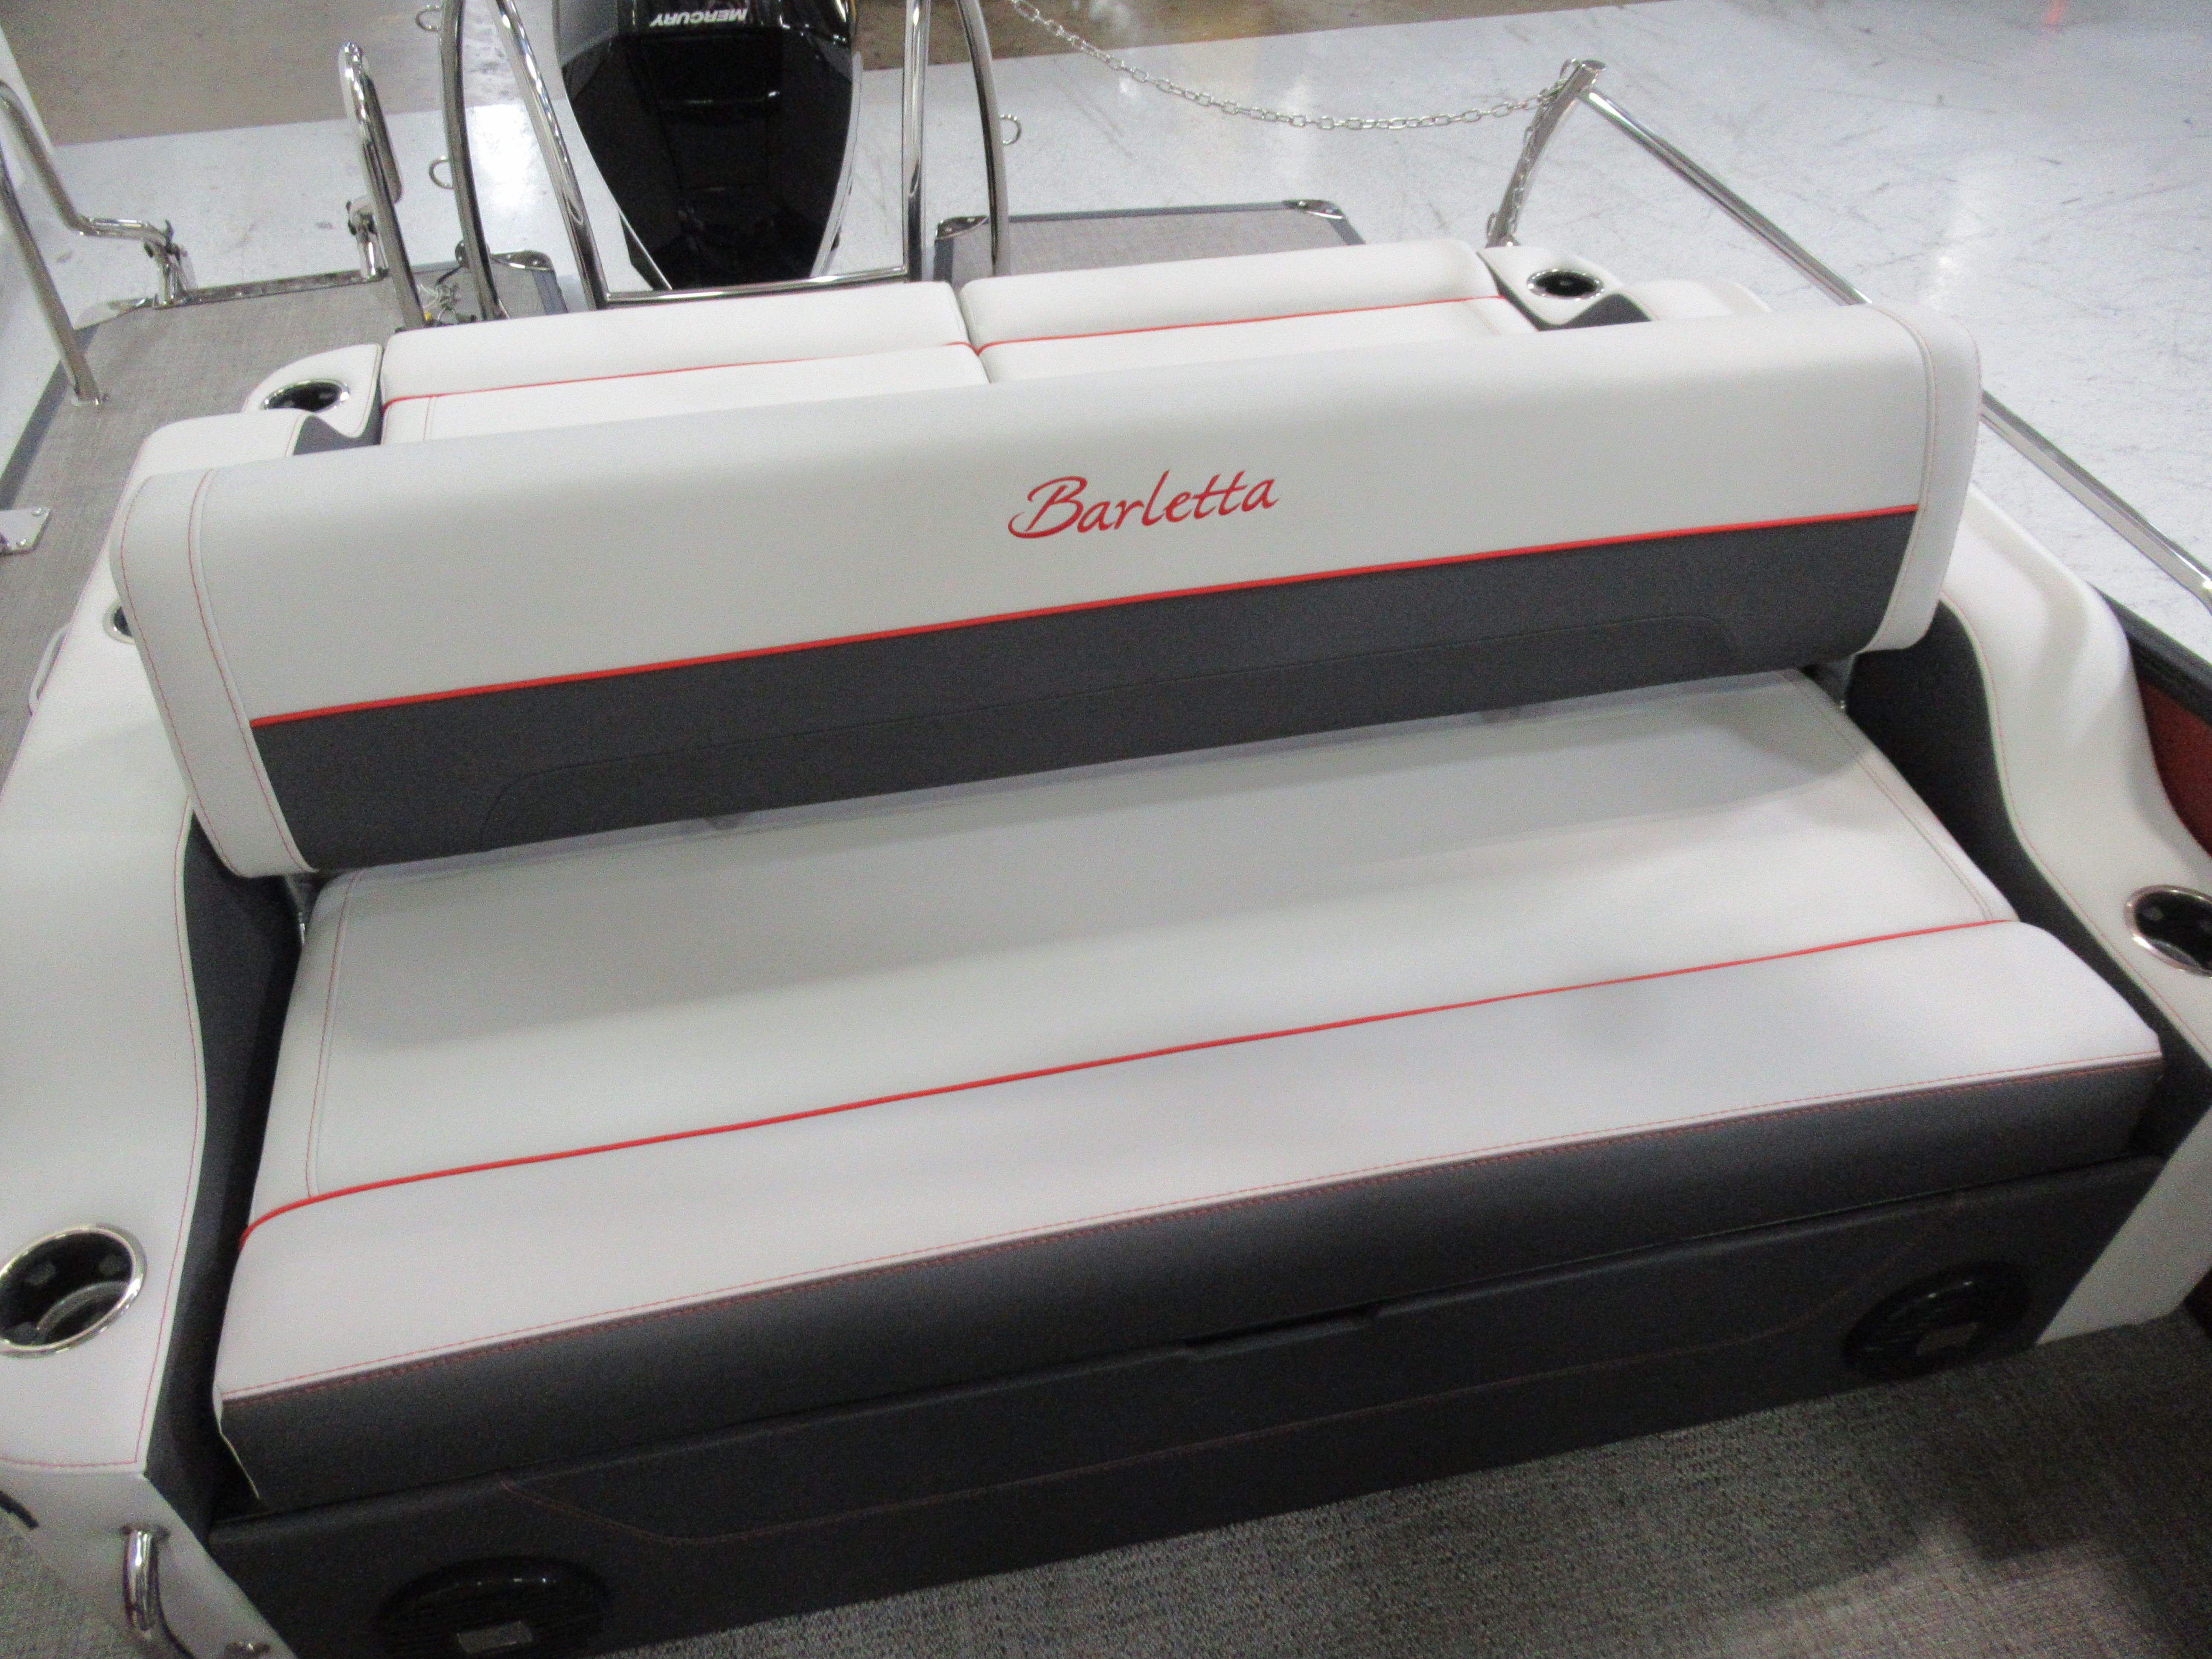 2021 Barletta boat for sale, model of the boat is CORSA 23UC & Image # 11 of 11